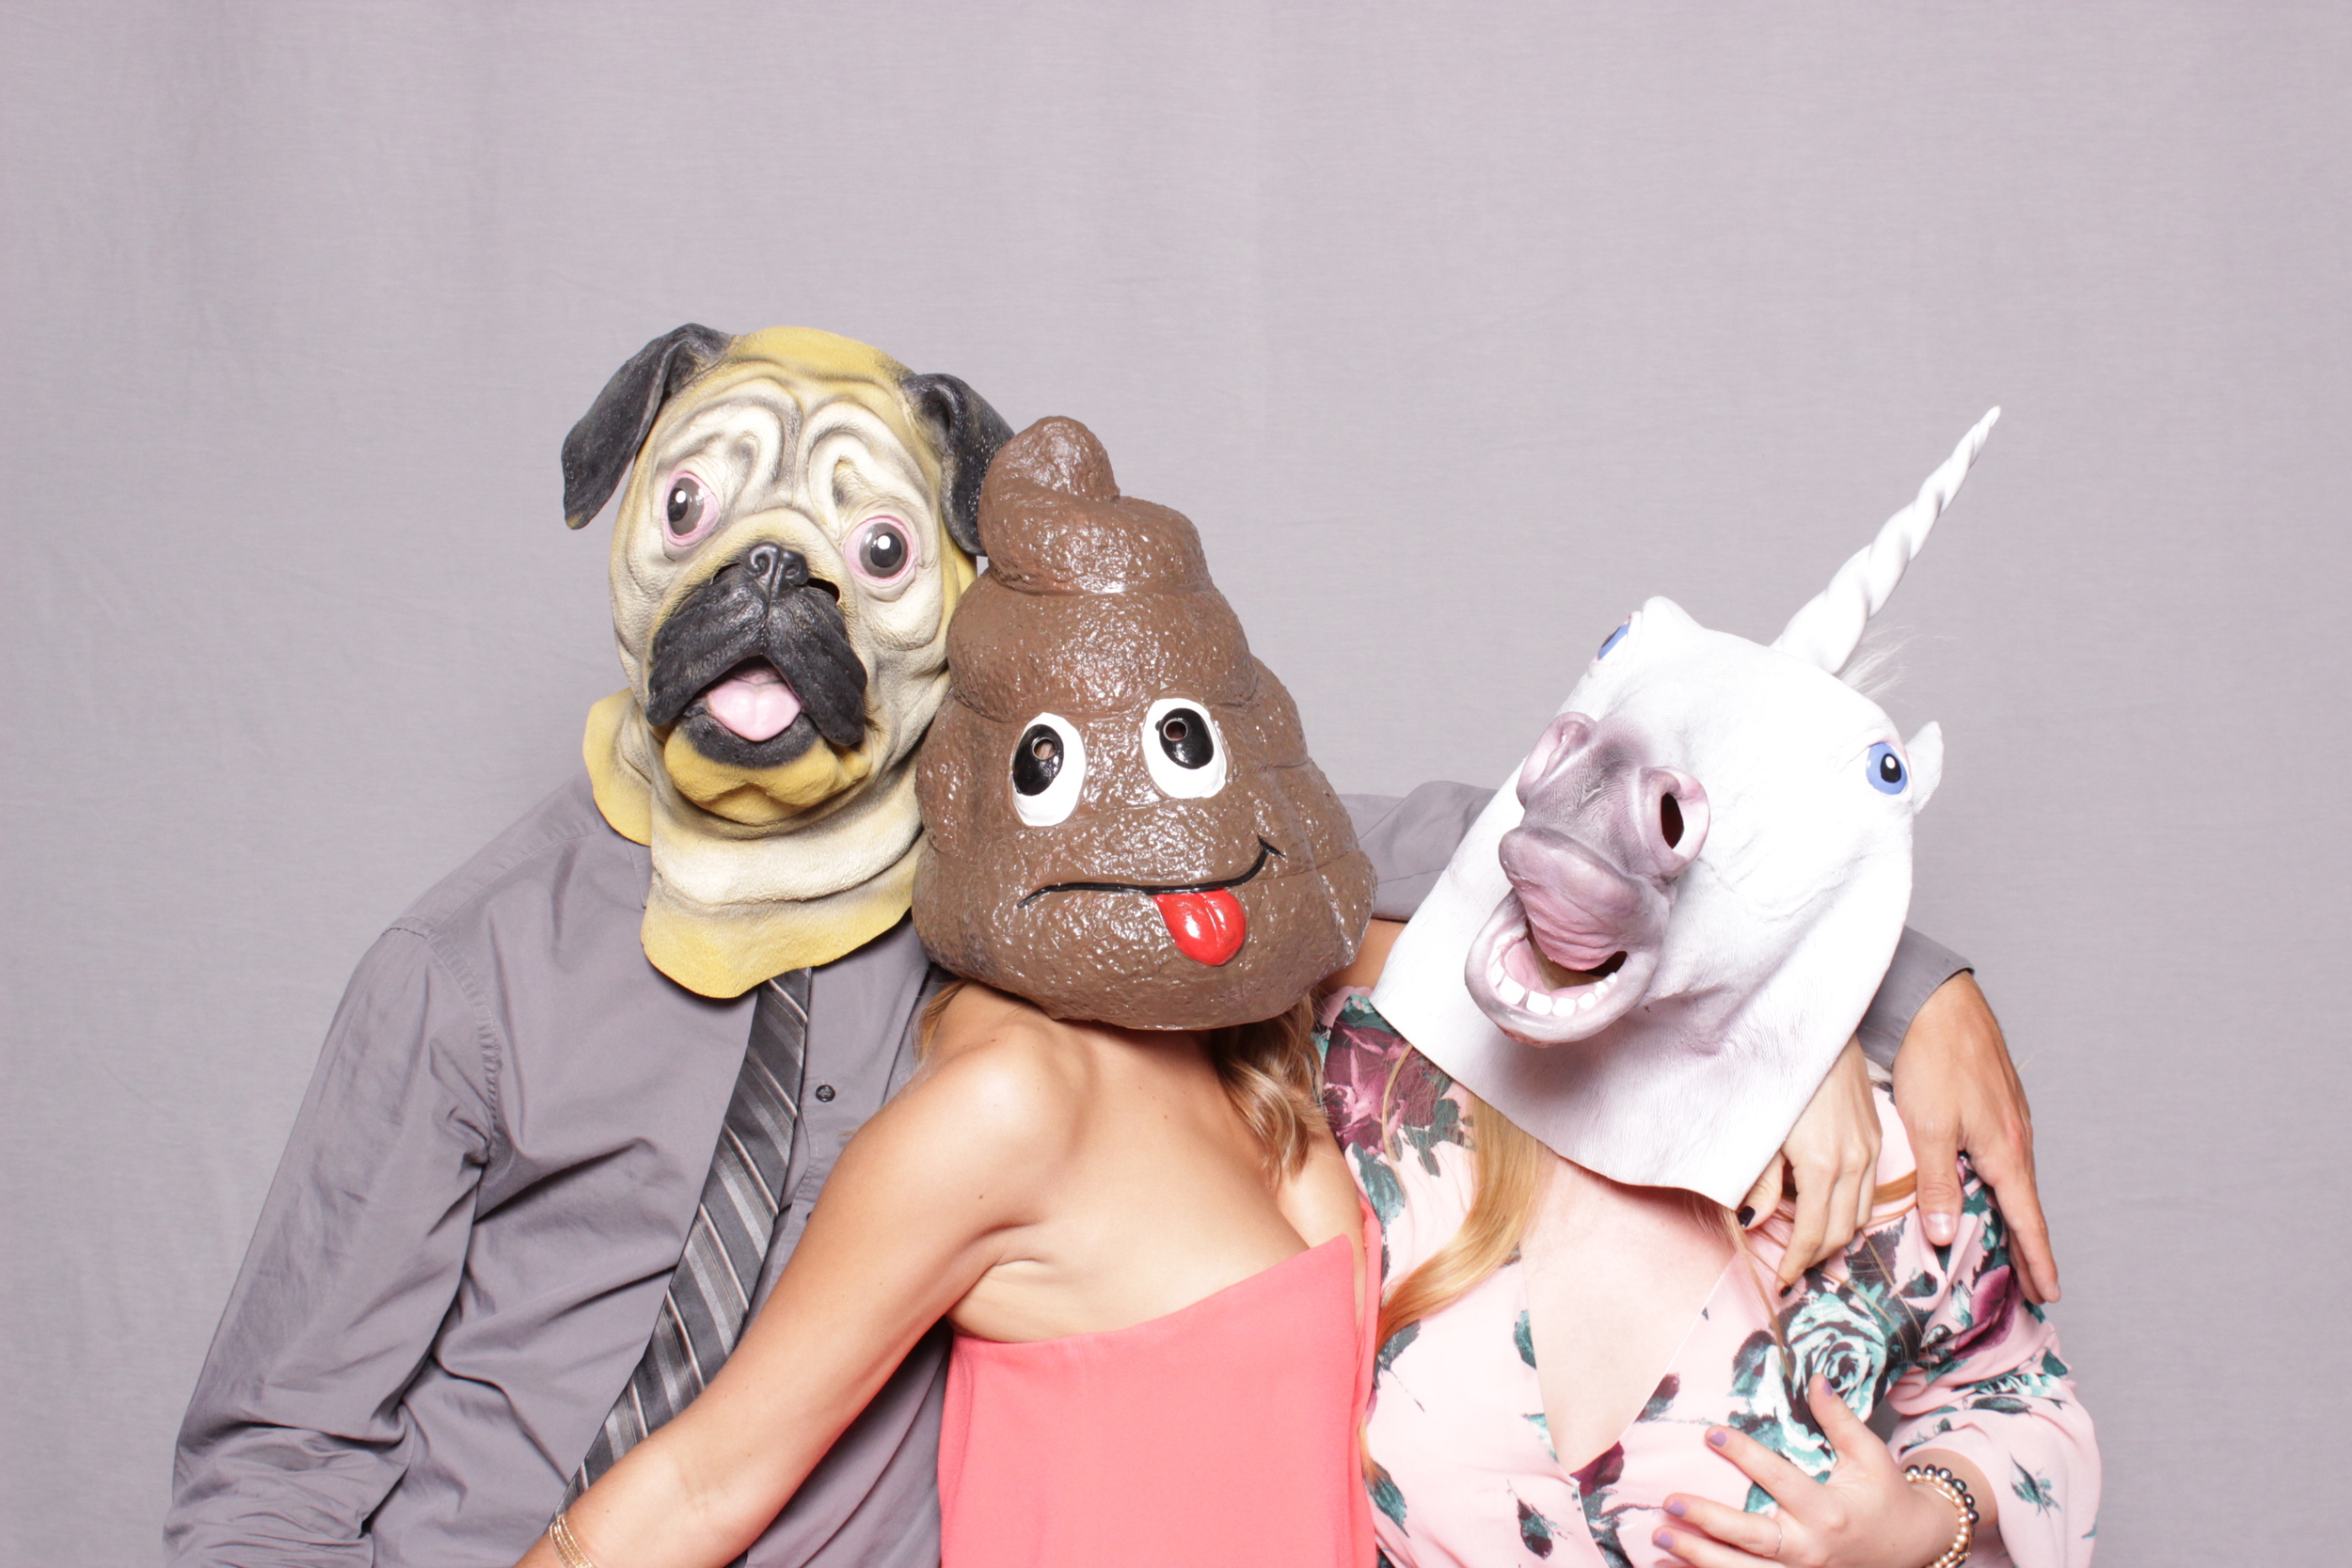 Cameron-Kristen-sacramento-photo-booth_0120.JPG